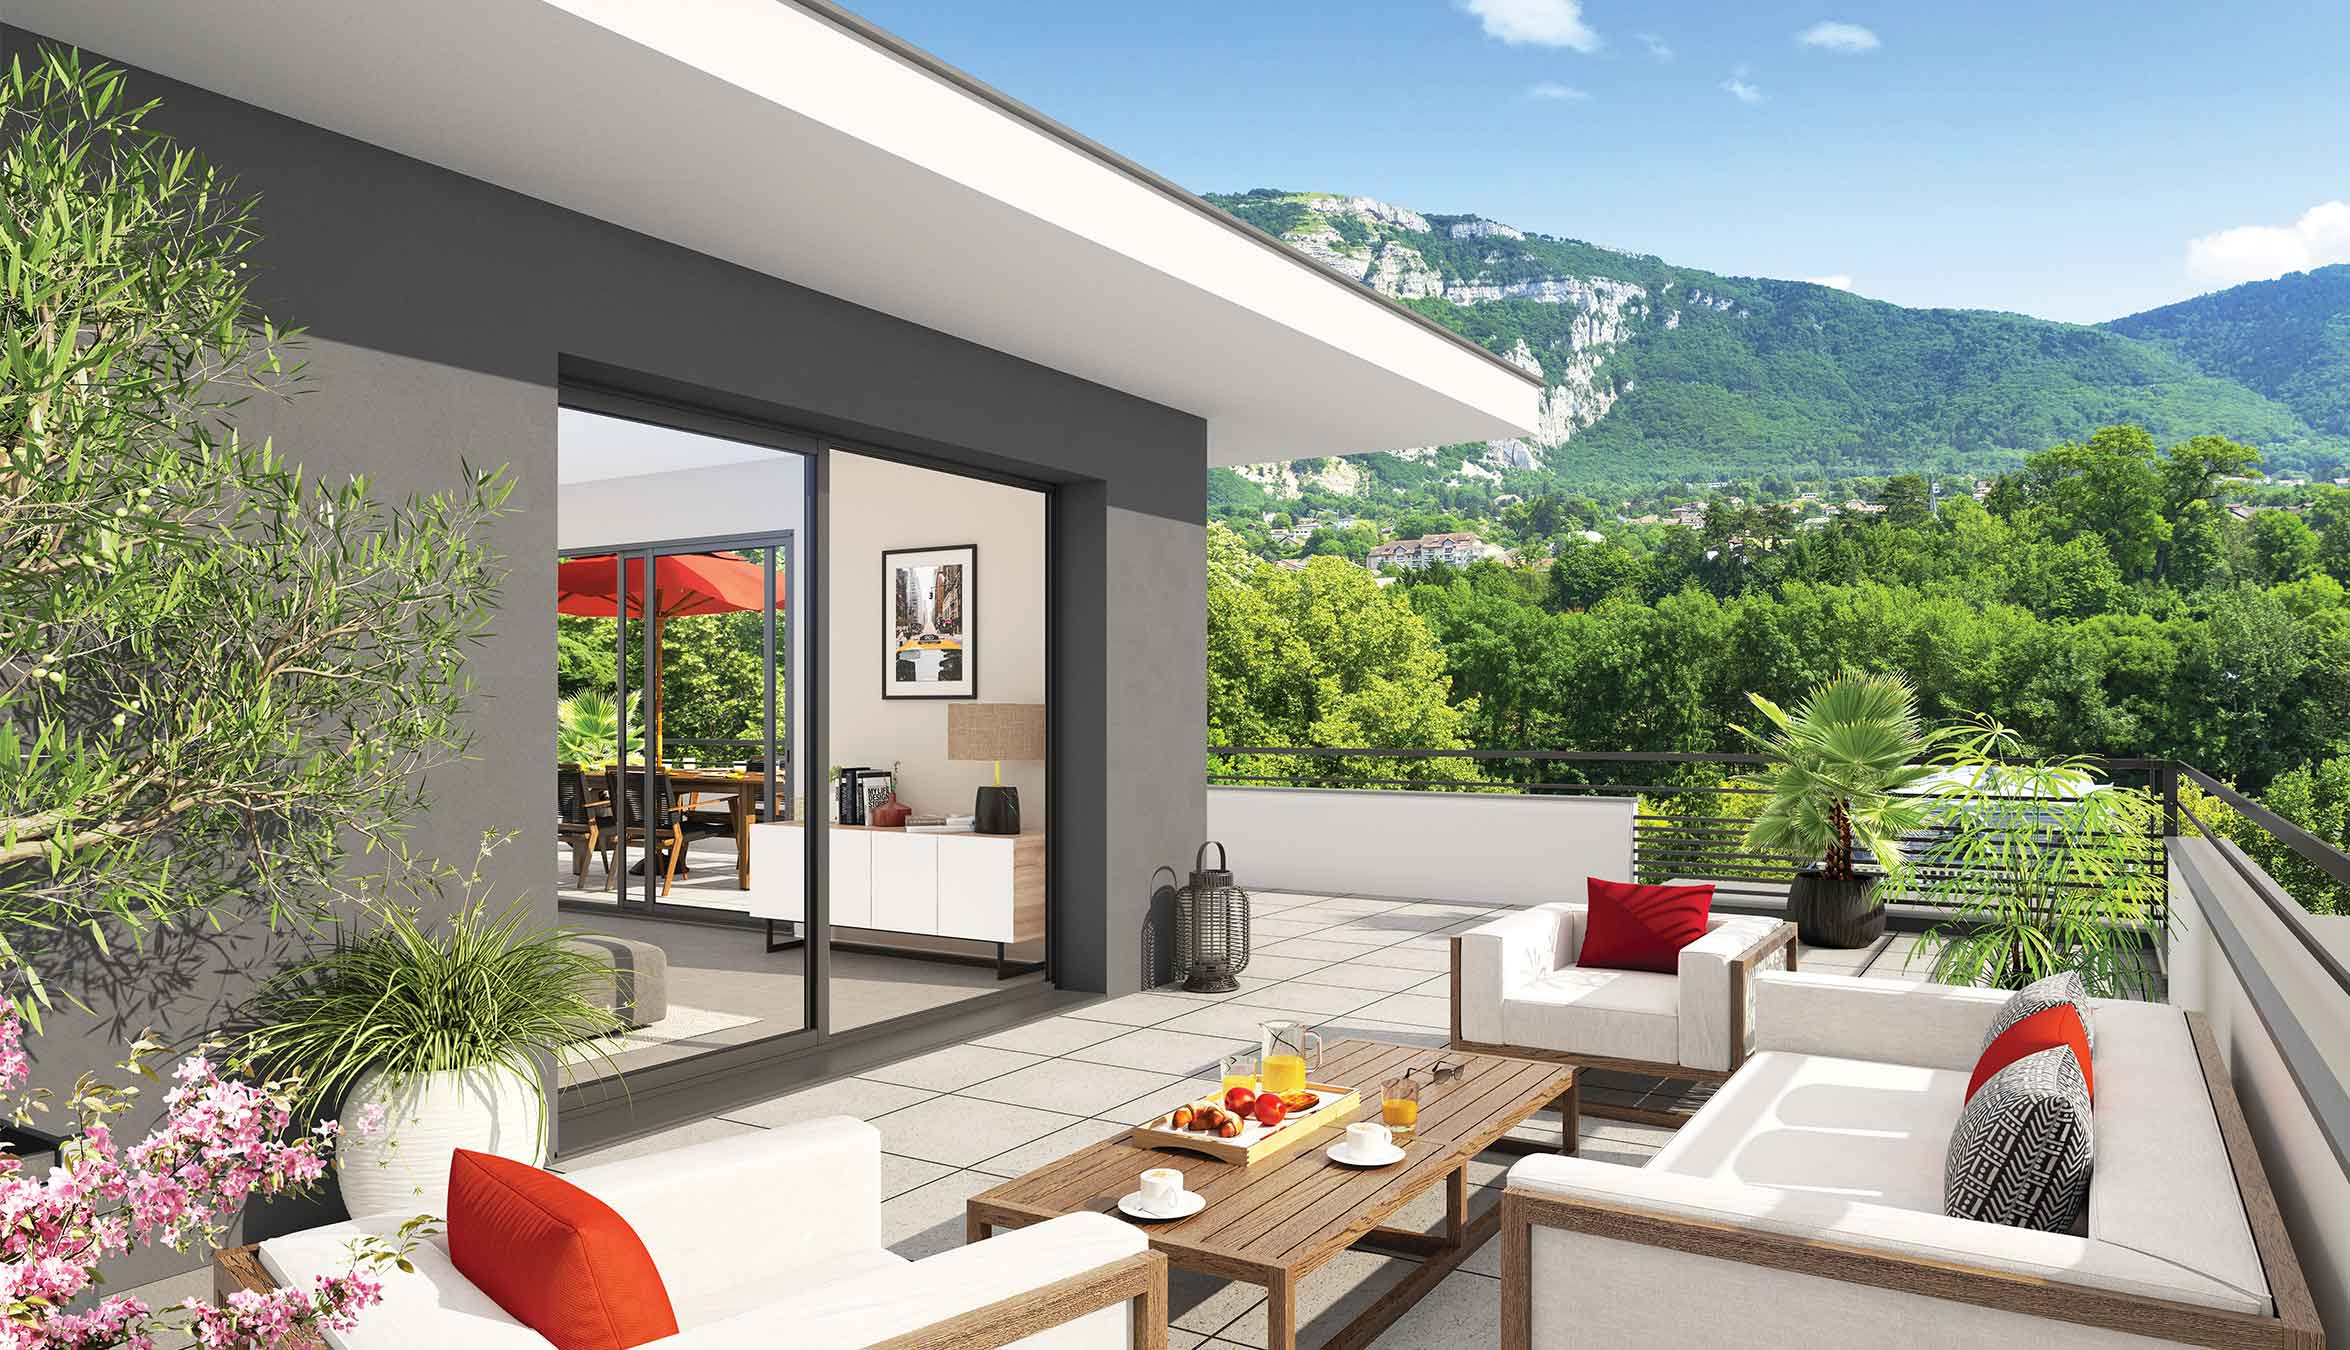 Domaine rose in wood programme immobilier neuf for Aide achat immobilier neuf